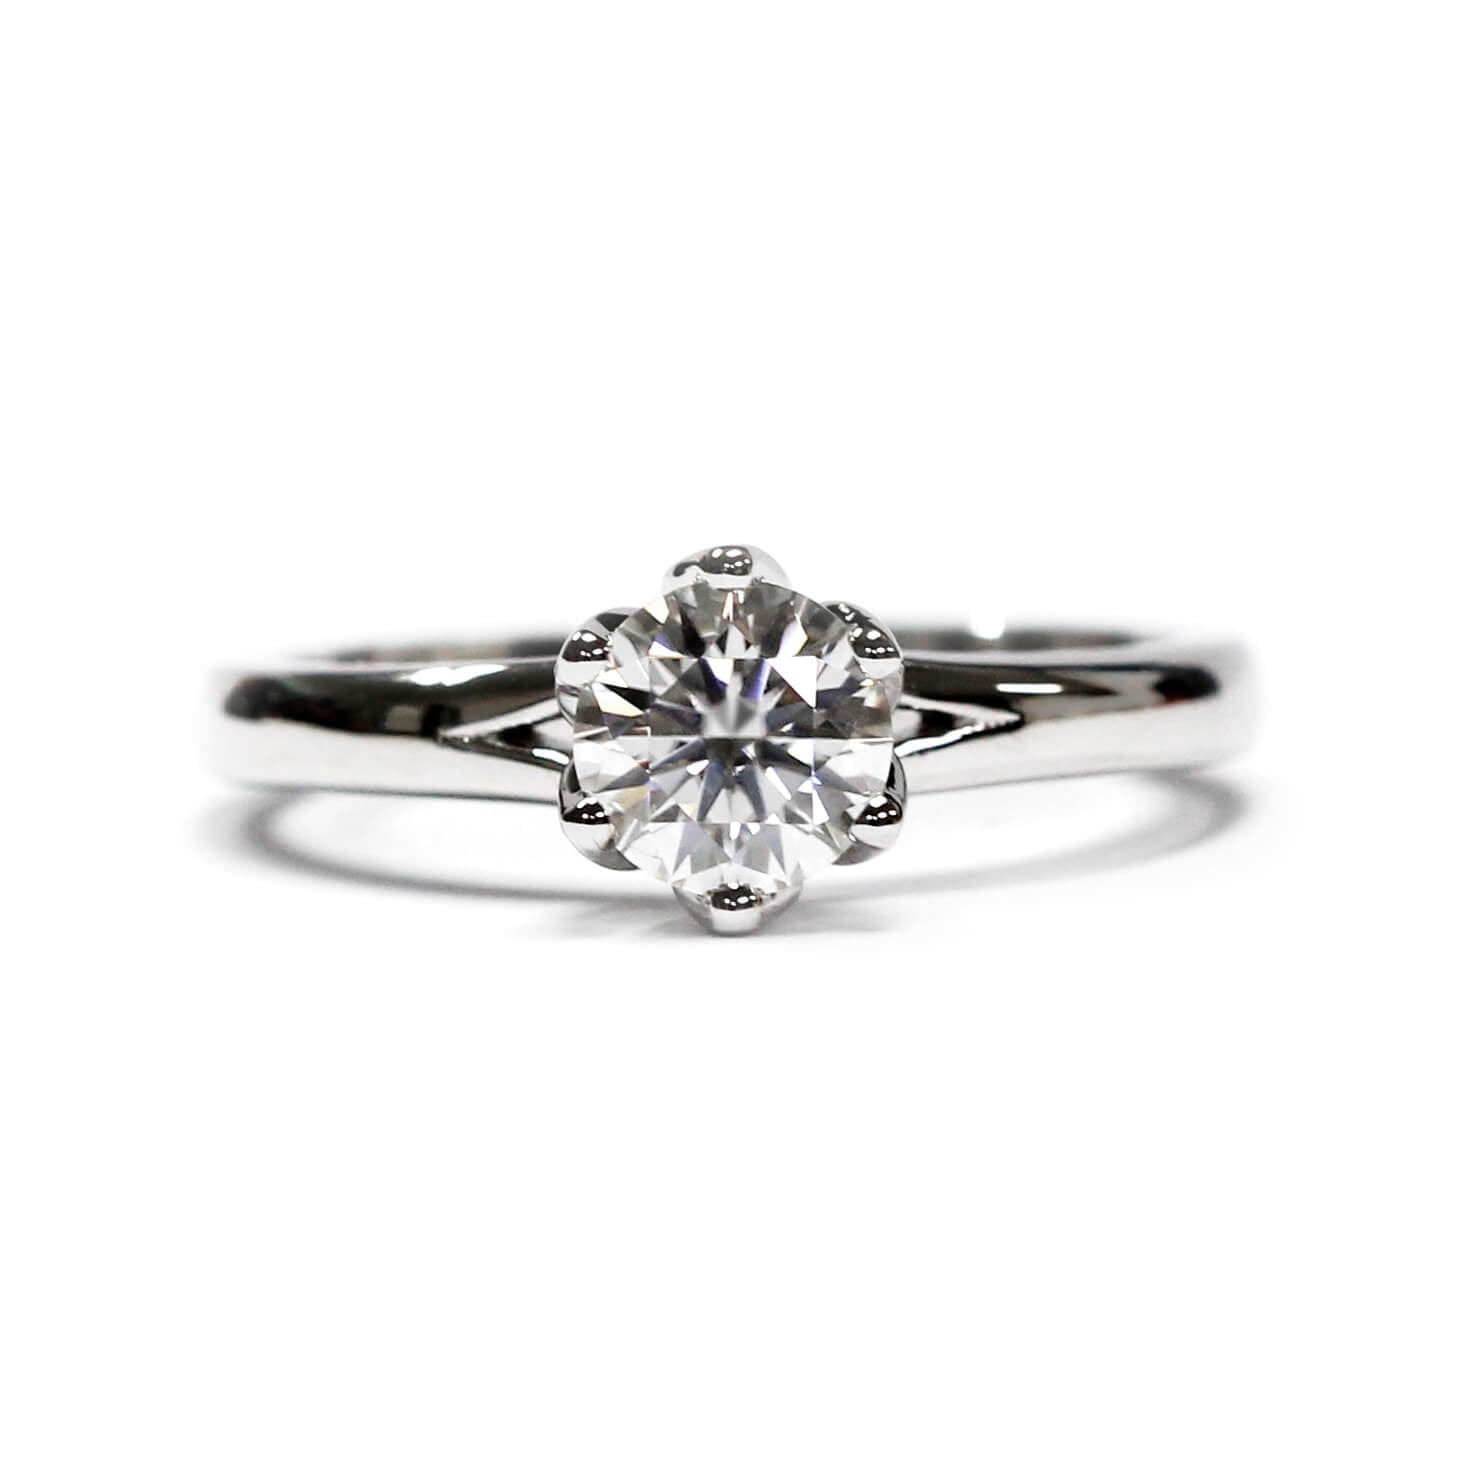 Ready-Made | Eleanor 1 Carat Moissanite Solitaire with Flower Petal Setting | Sizes HK 9-12 - LeCaine Gems